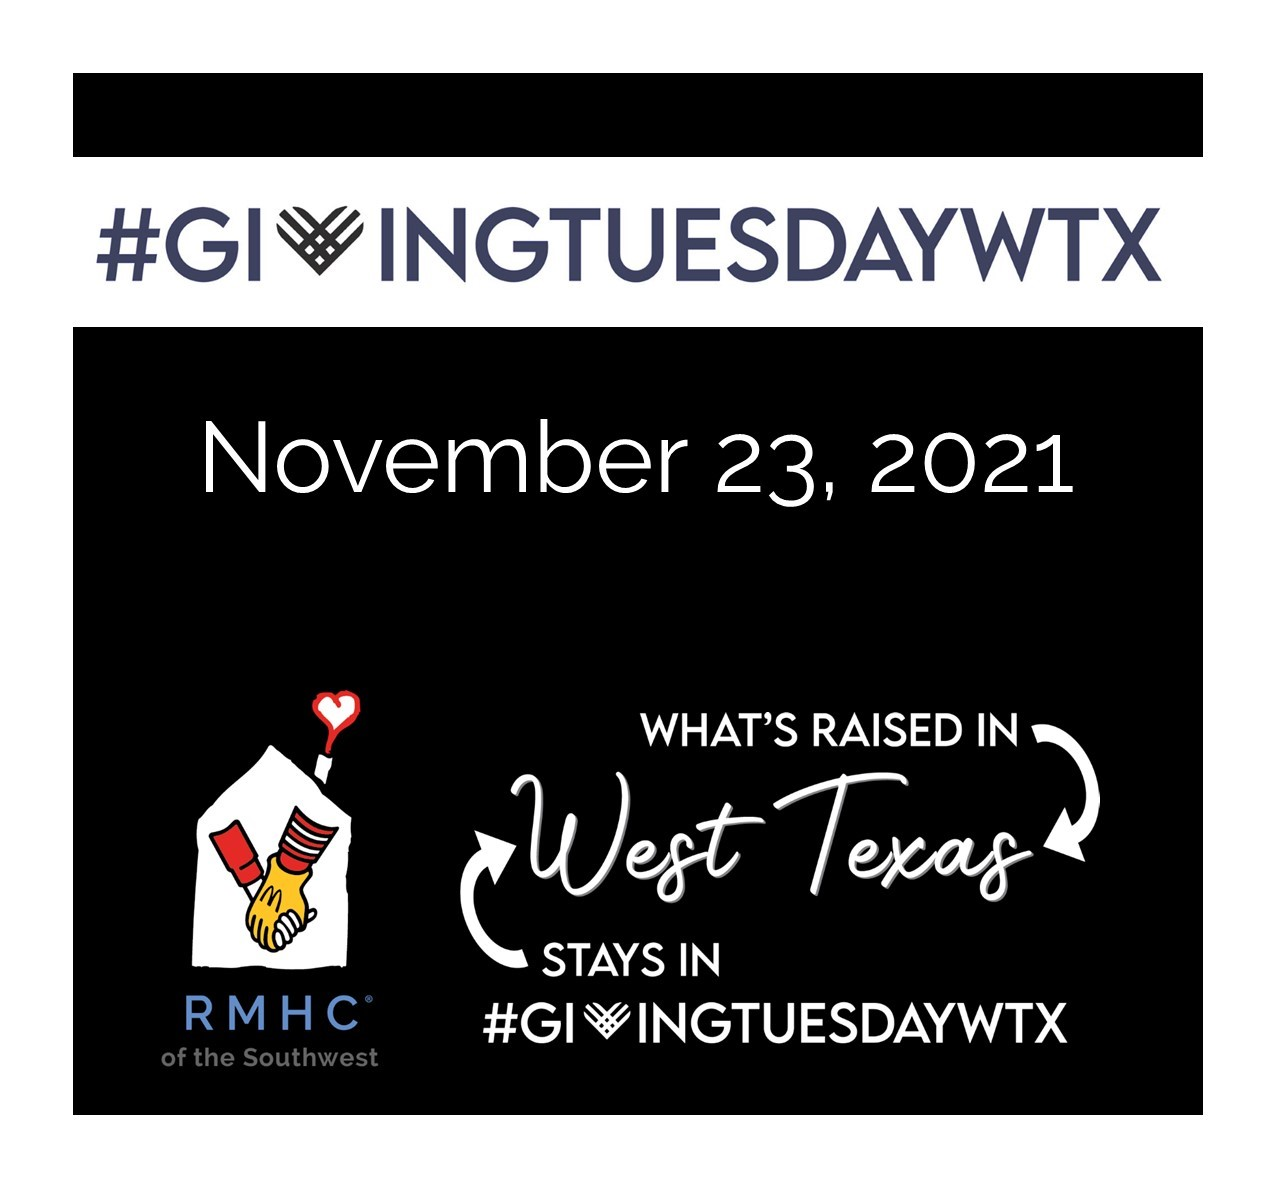 Link to Giving Tuesday donation page